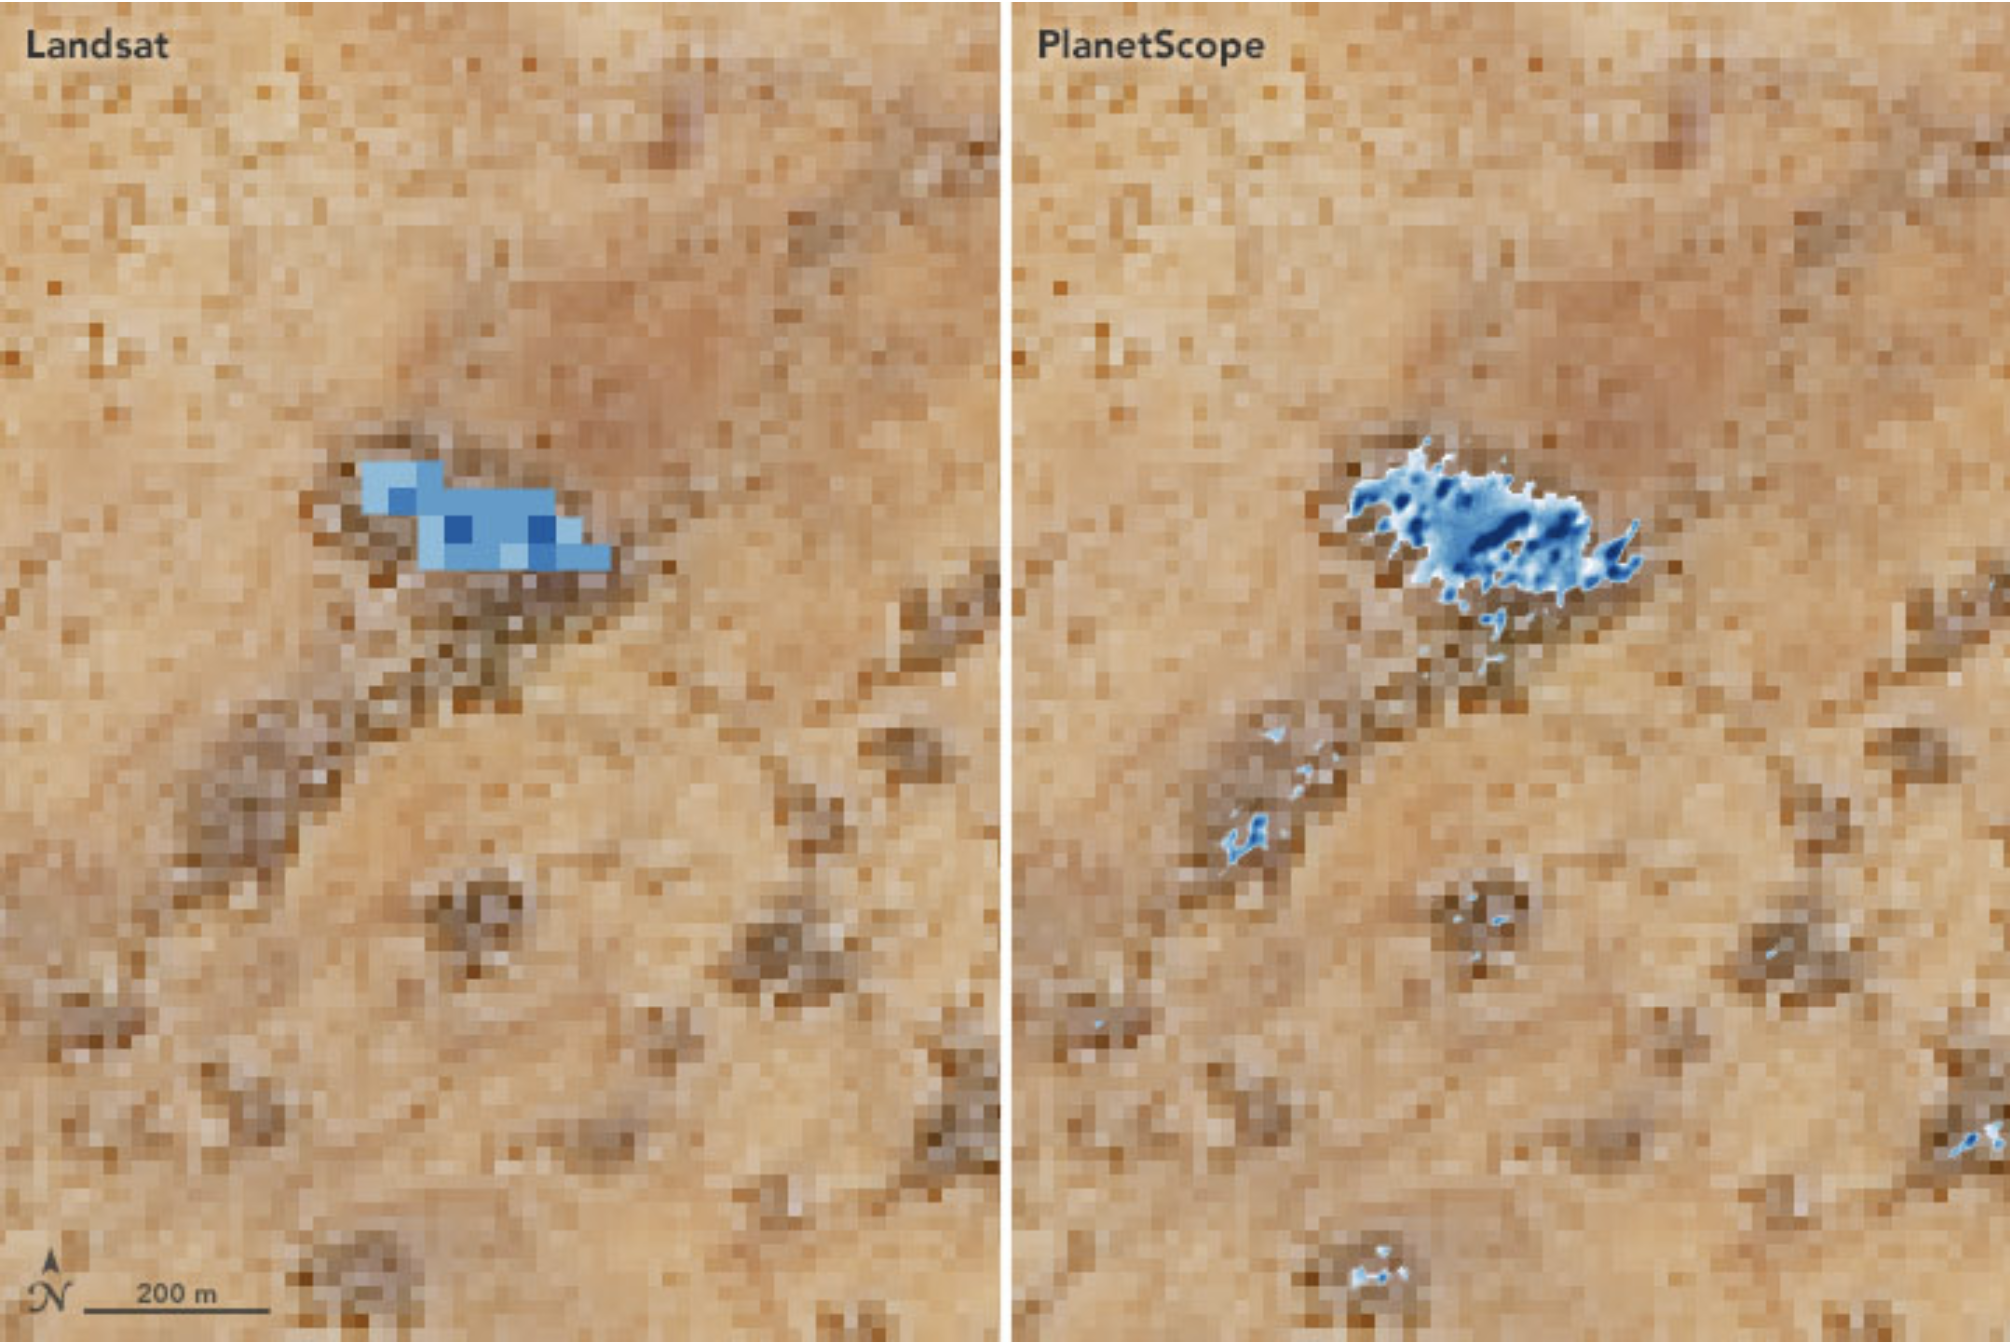 The image shows improved resolution of PlanetScope imagery, compared to Landsat, when identifying small watering holes for herders in Senegal.